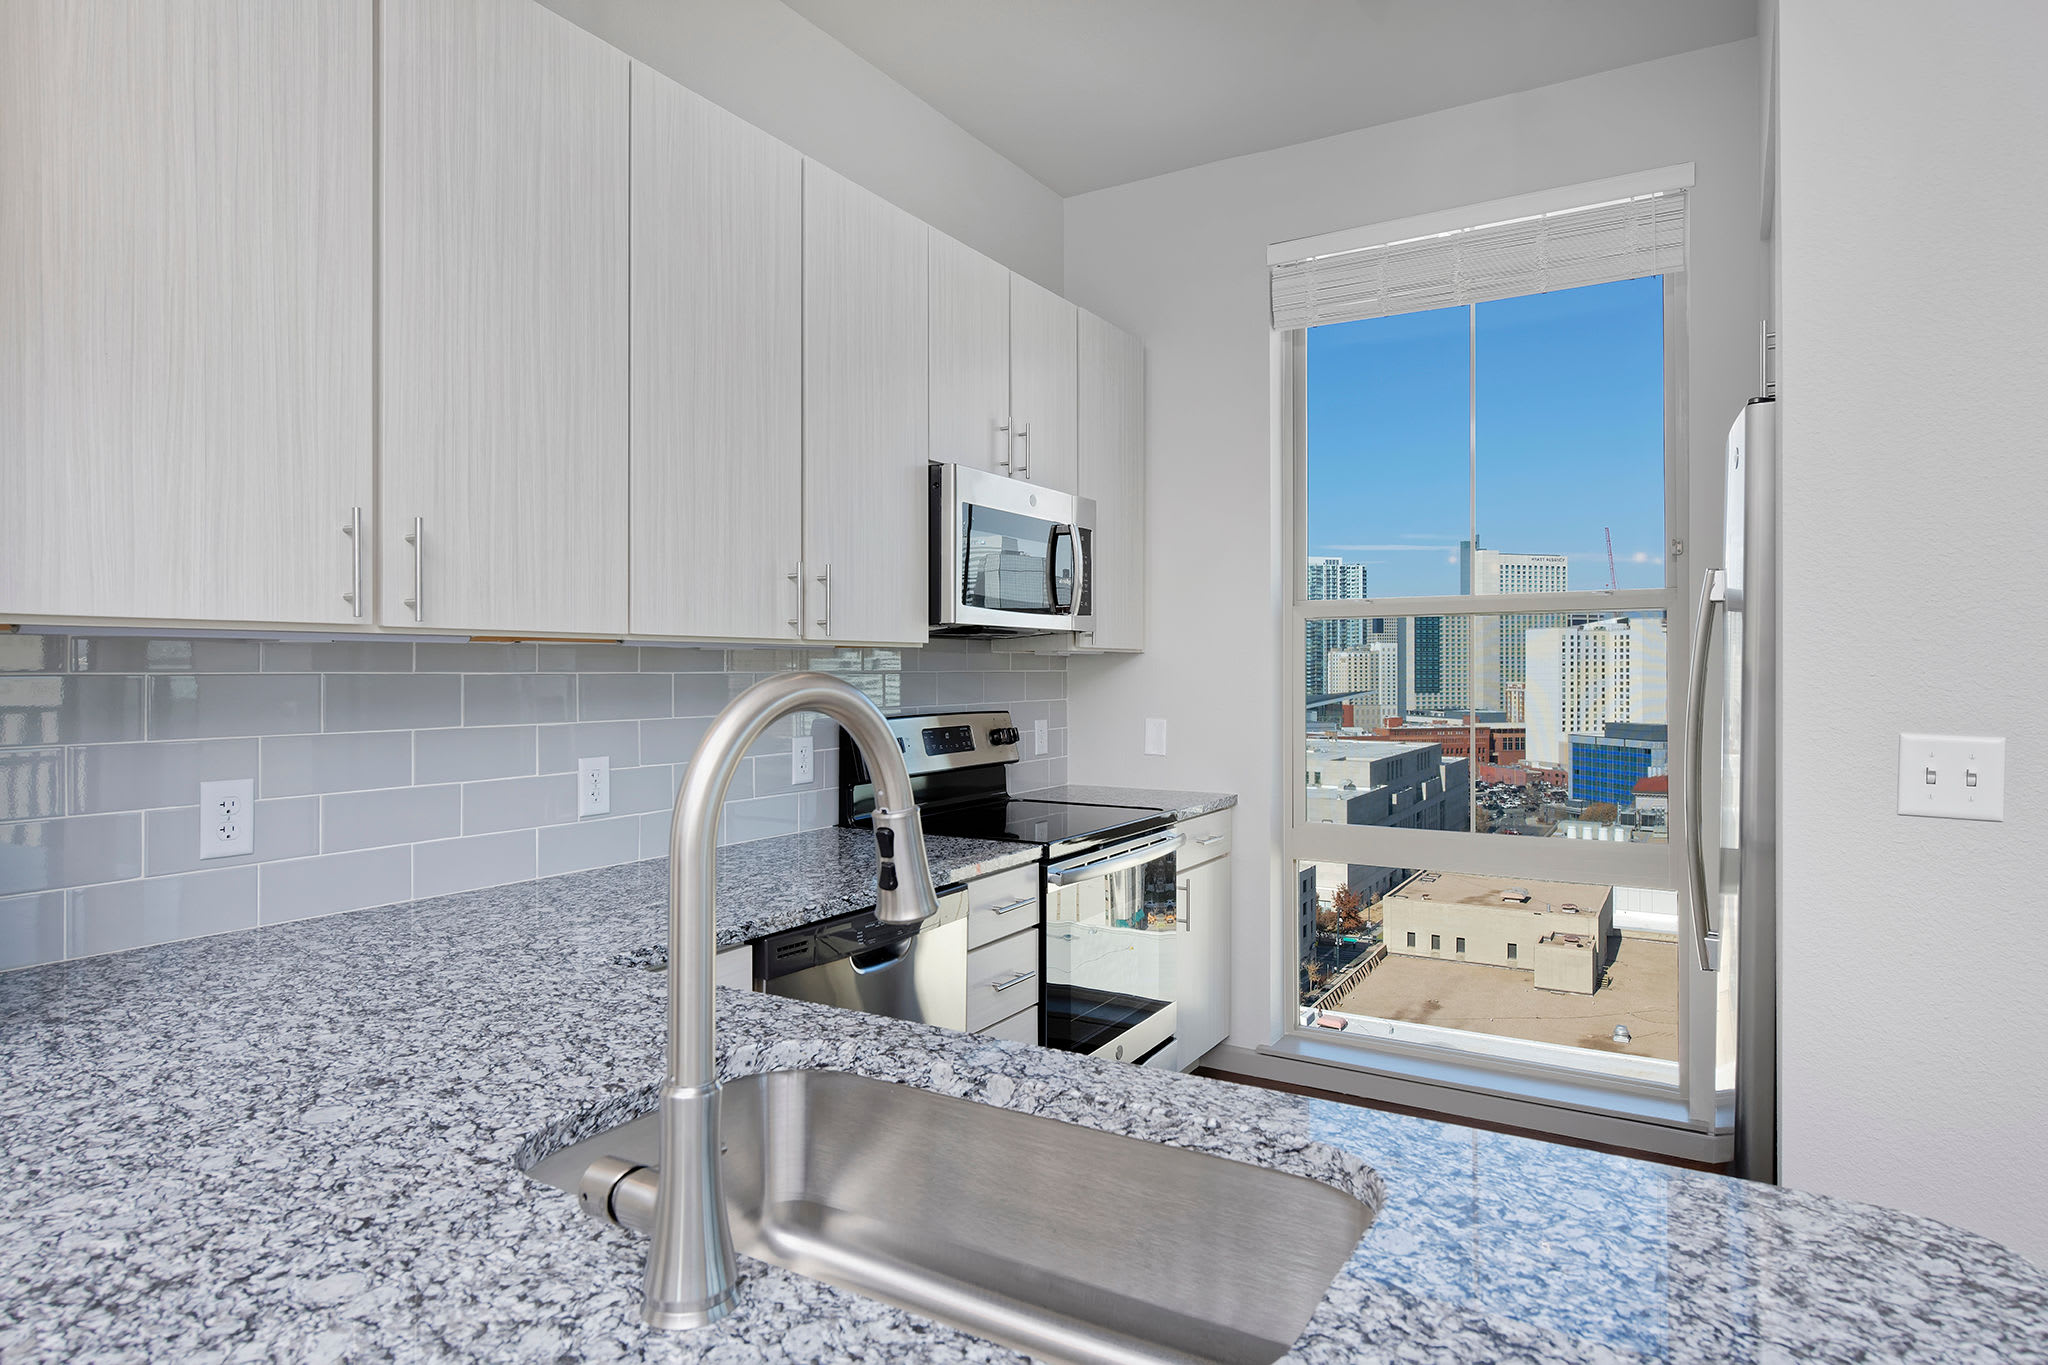 Marble counter sink with city views at Civic Lofts in Downtown Denver, CO